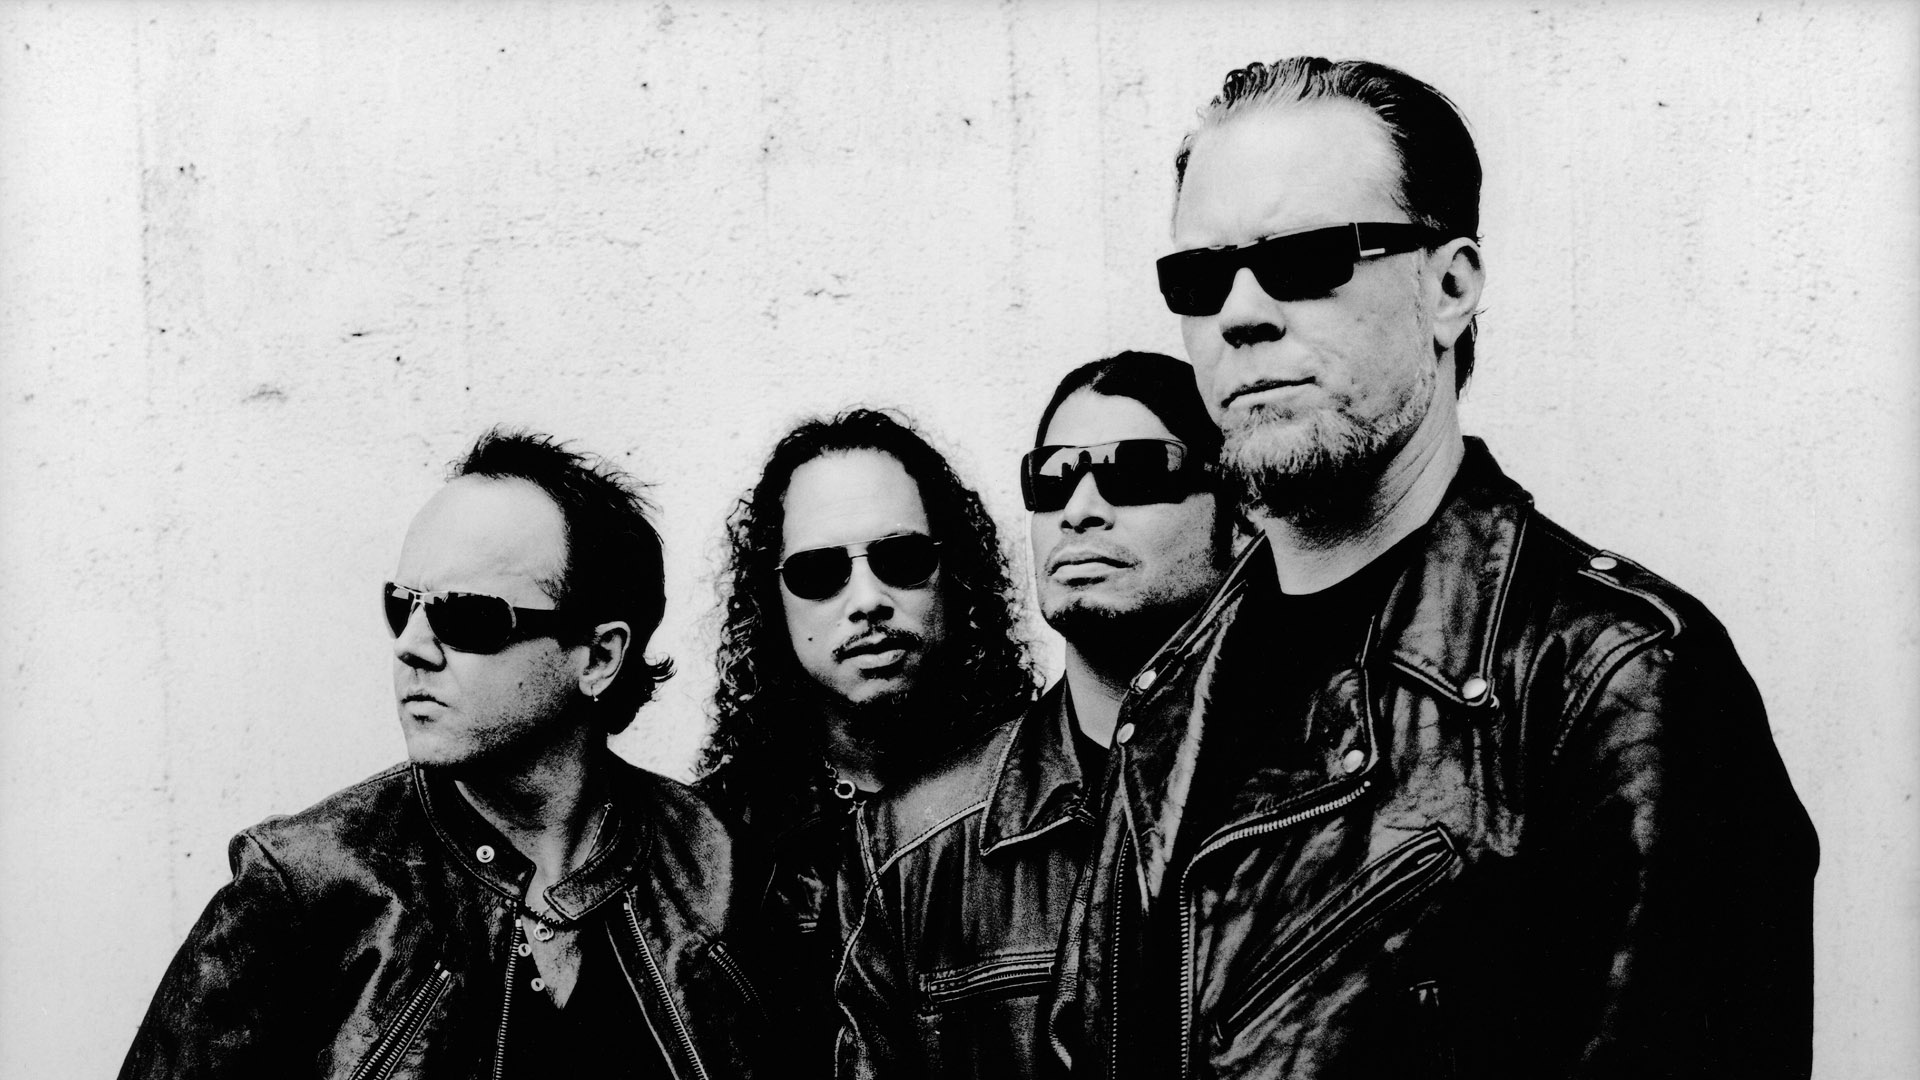 metallica hd wallpaper background image 1920x1080 id 277357 wallpaper abyss. Black Bedroom Furniture Sets. Home Design Ideas